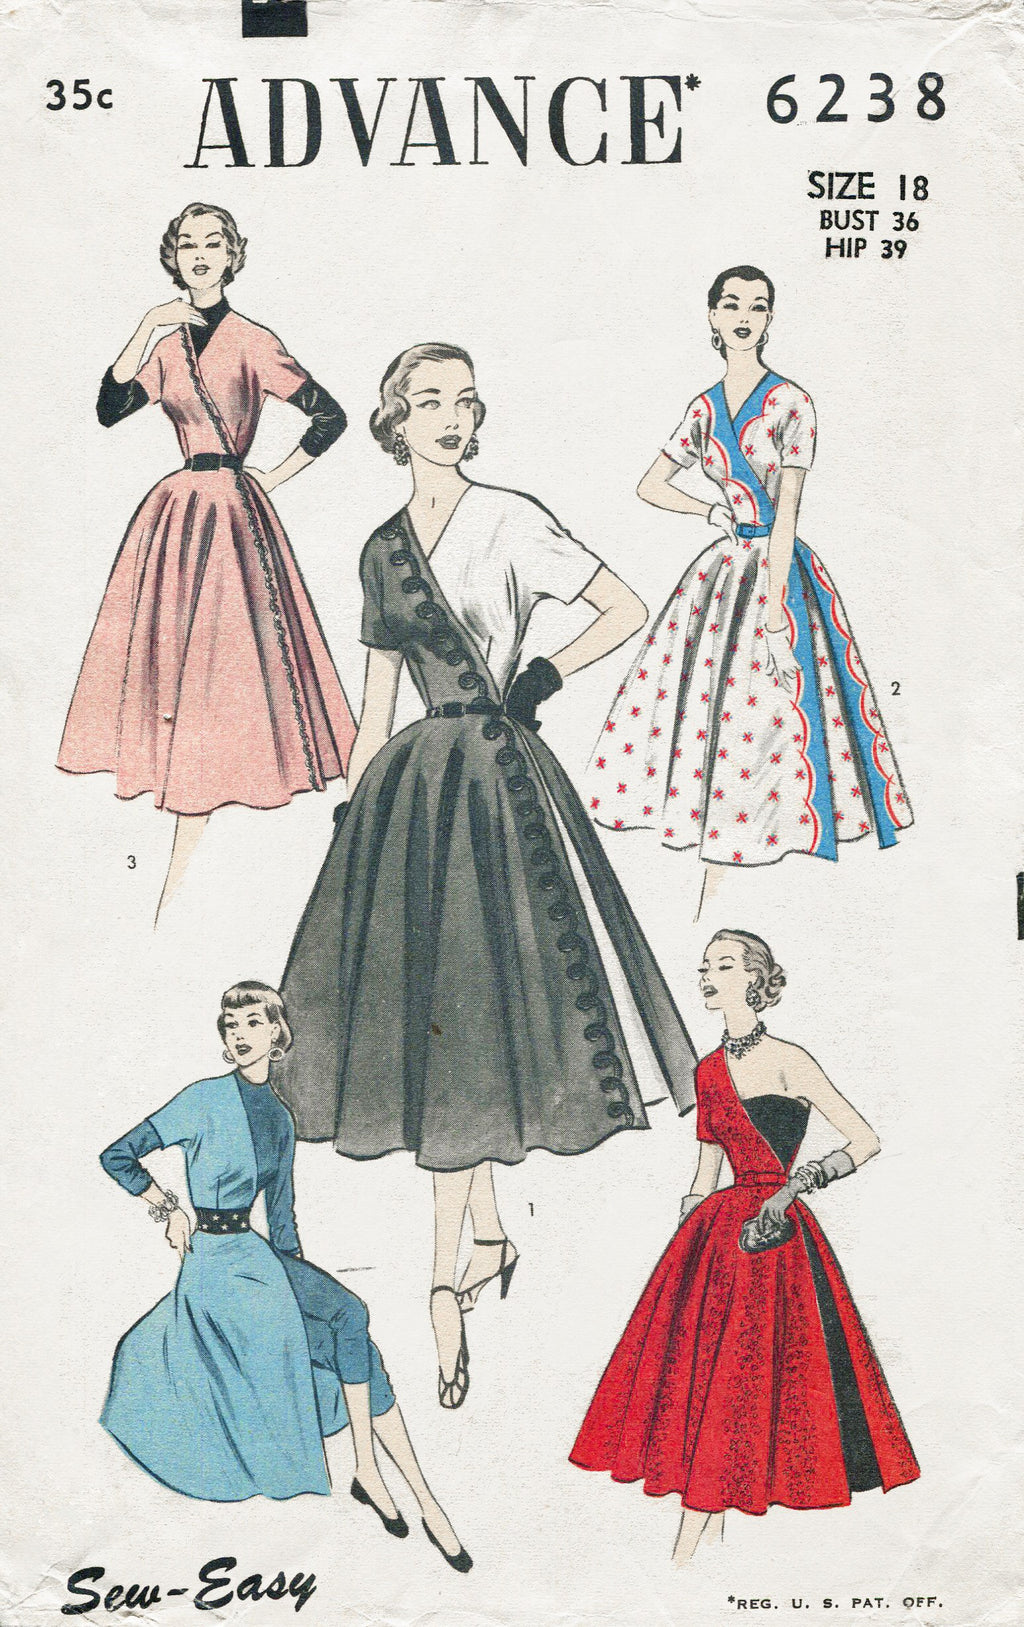 Advance 6238 1950s dress sewing pattern